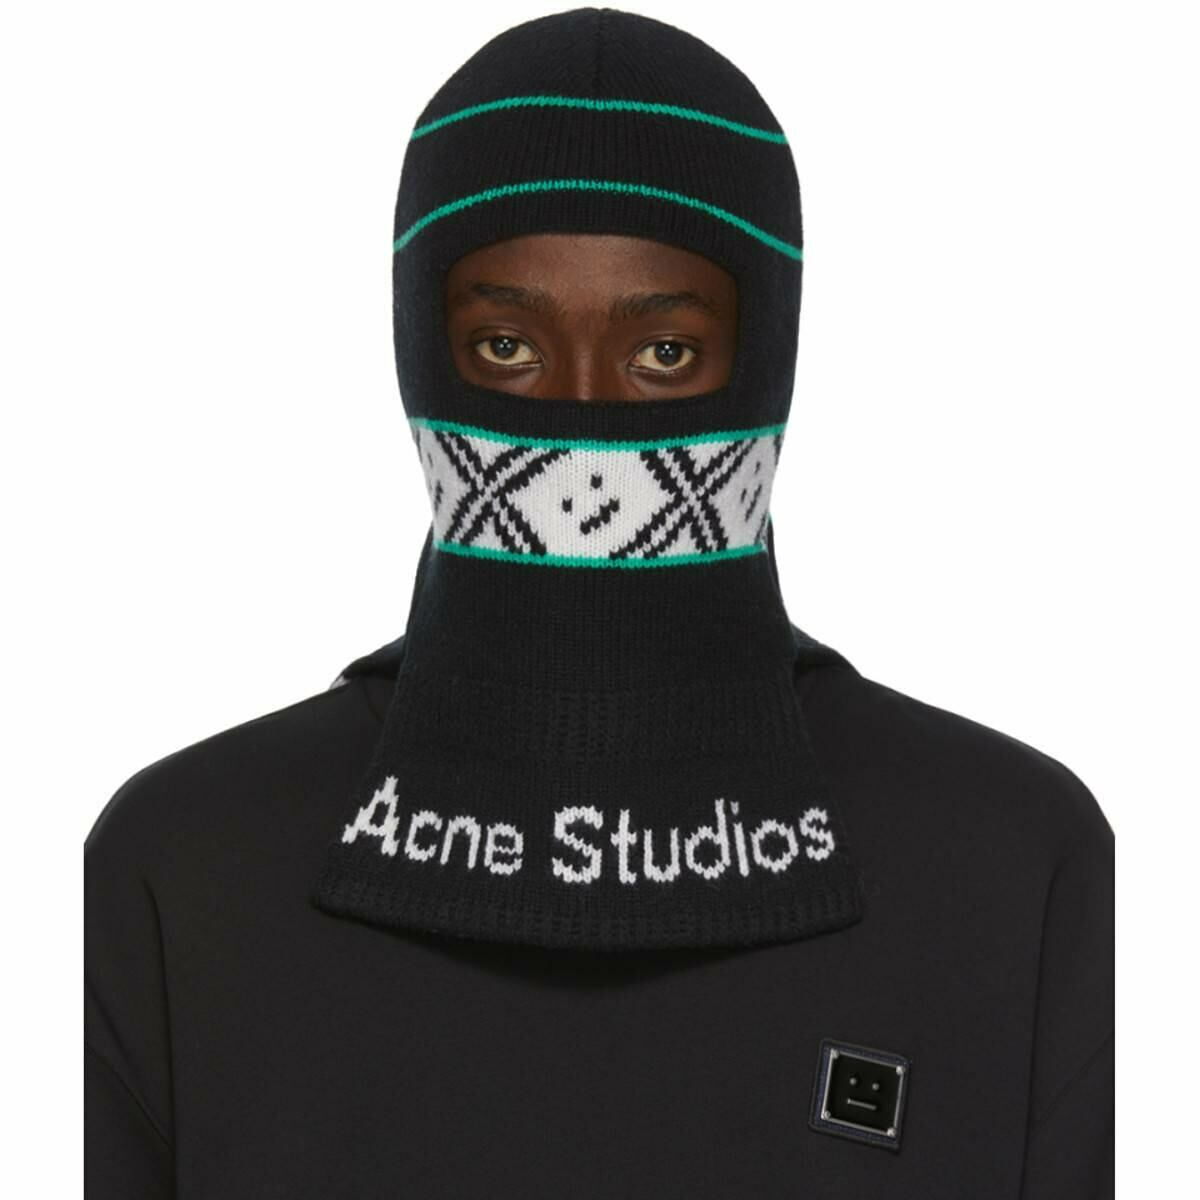 Acne Studios Black Jacquard Logo Balaclava Ssense USA MEN Men ACCESSORIES Mens SCARFS